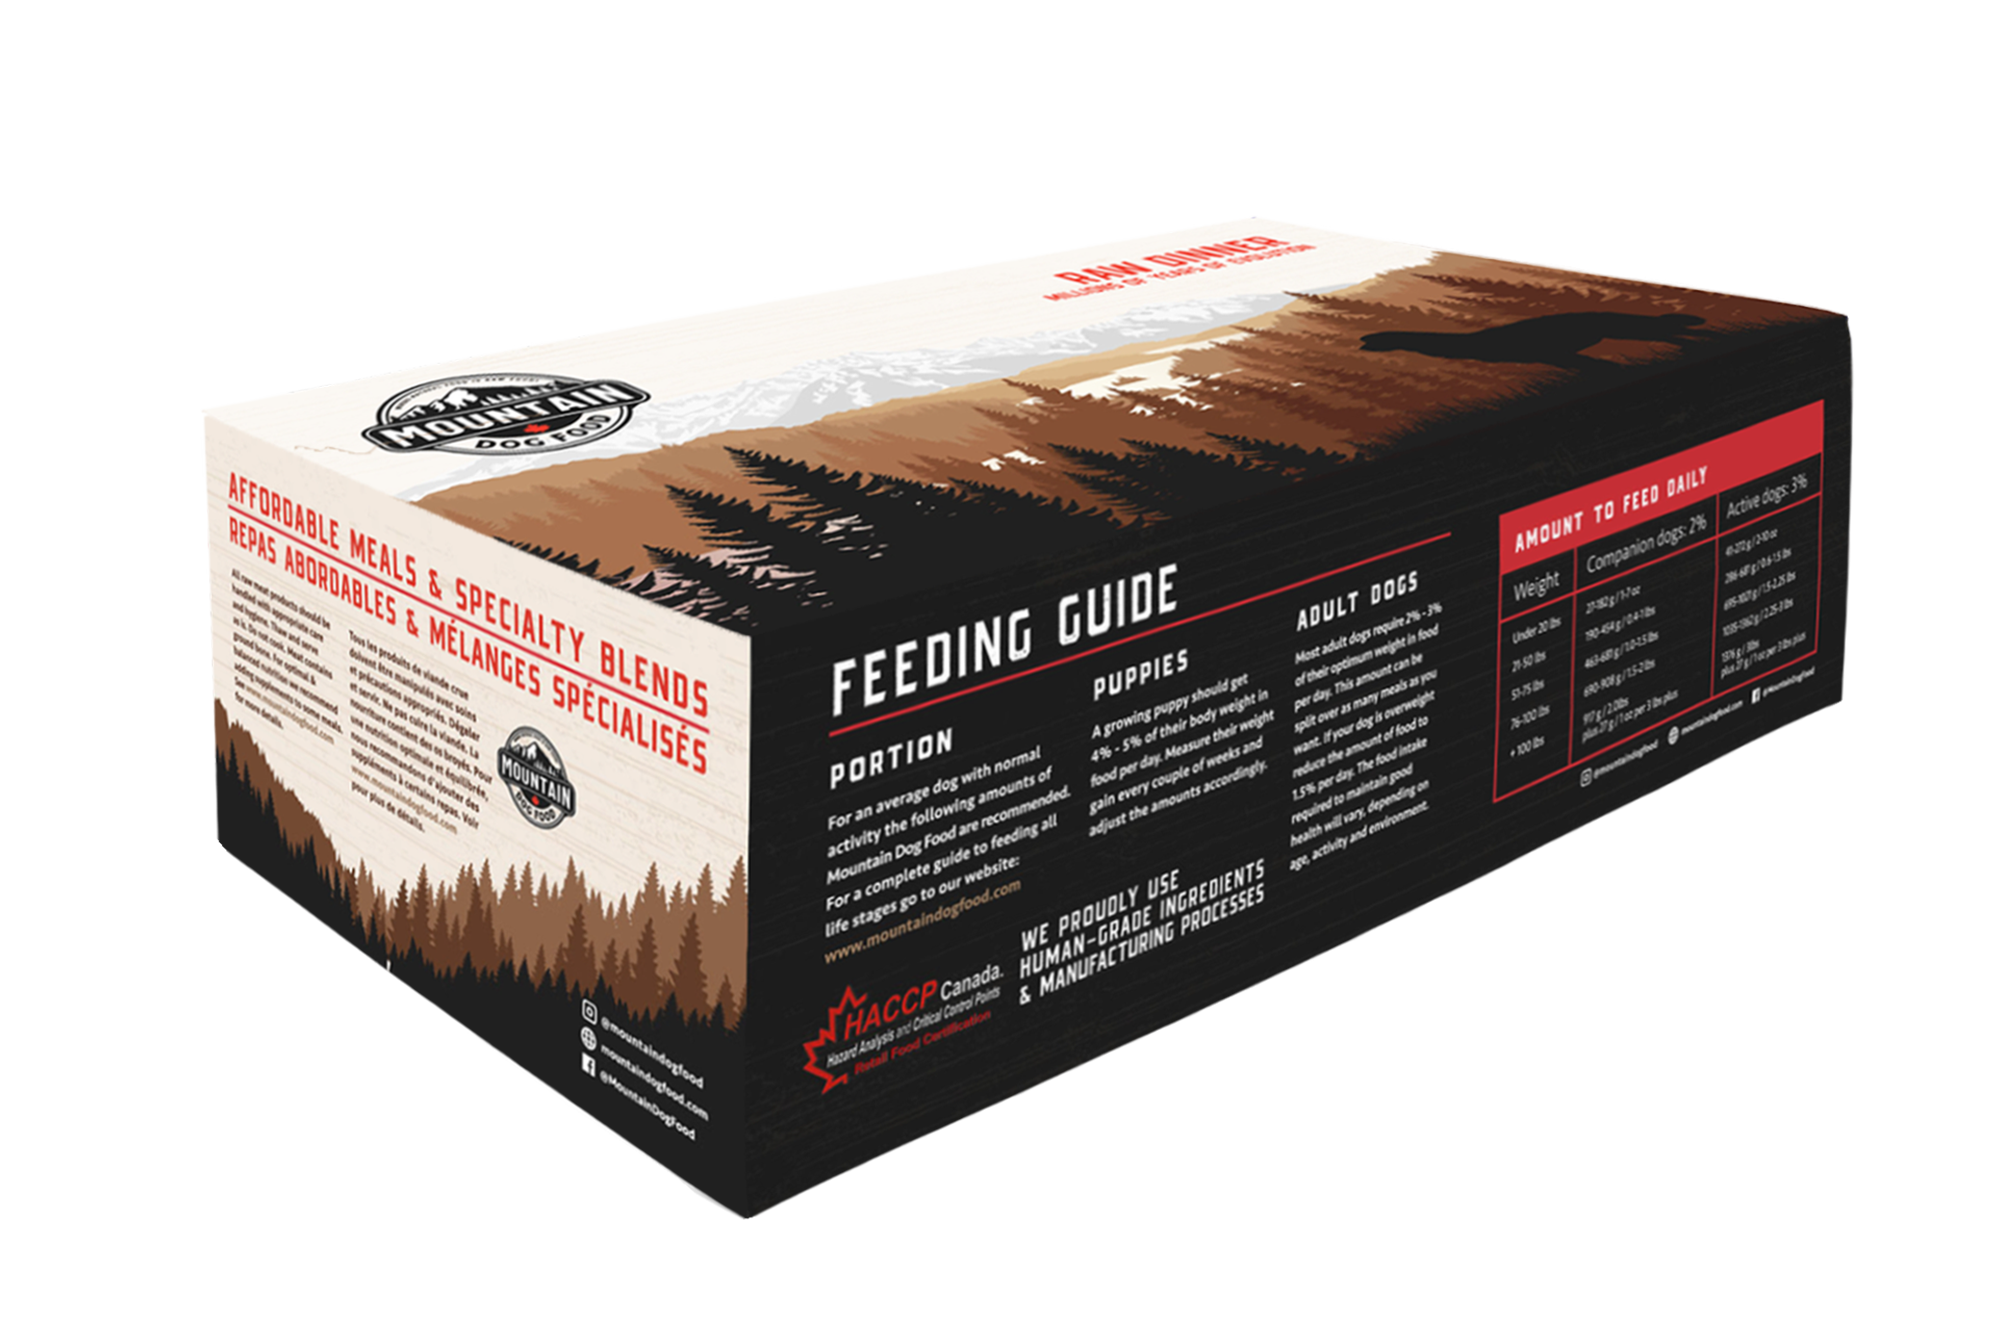 Mountain Dog Food Foundation Chicken & Vegetable Frozen Dog Food Image